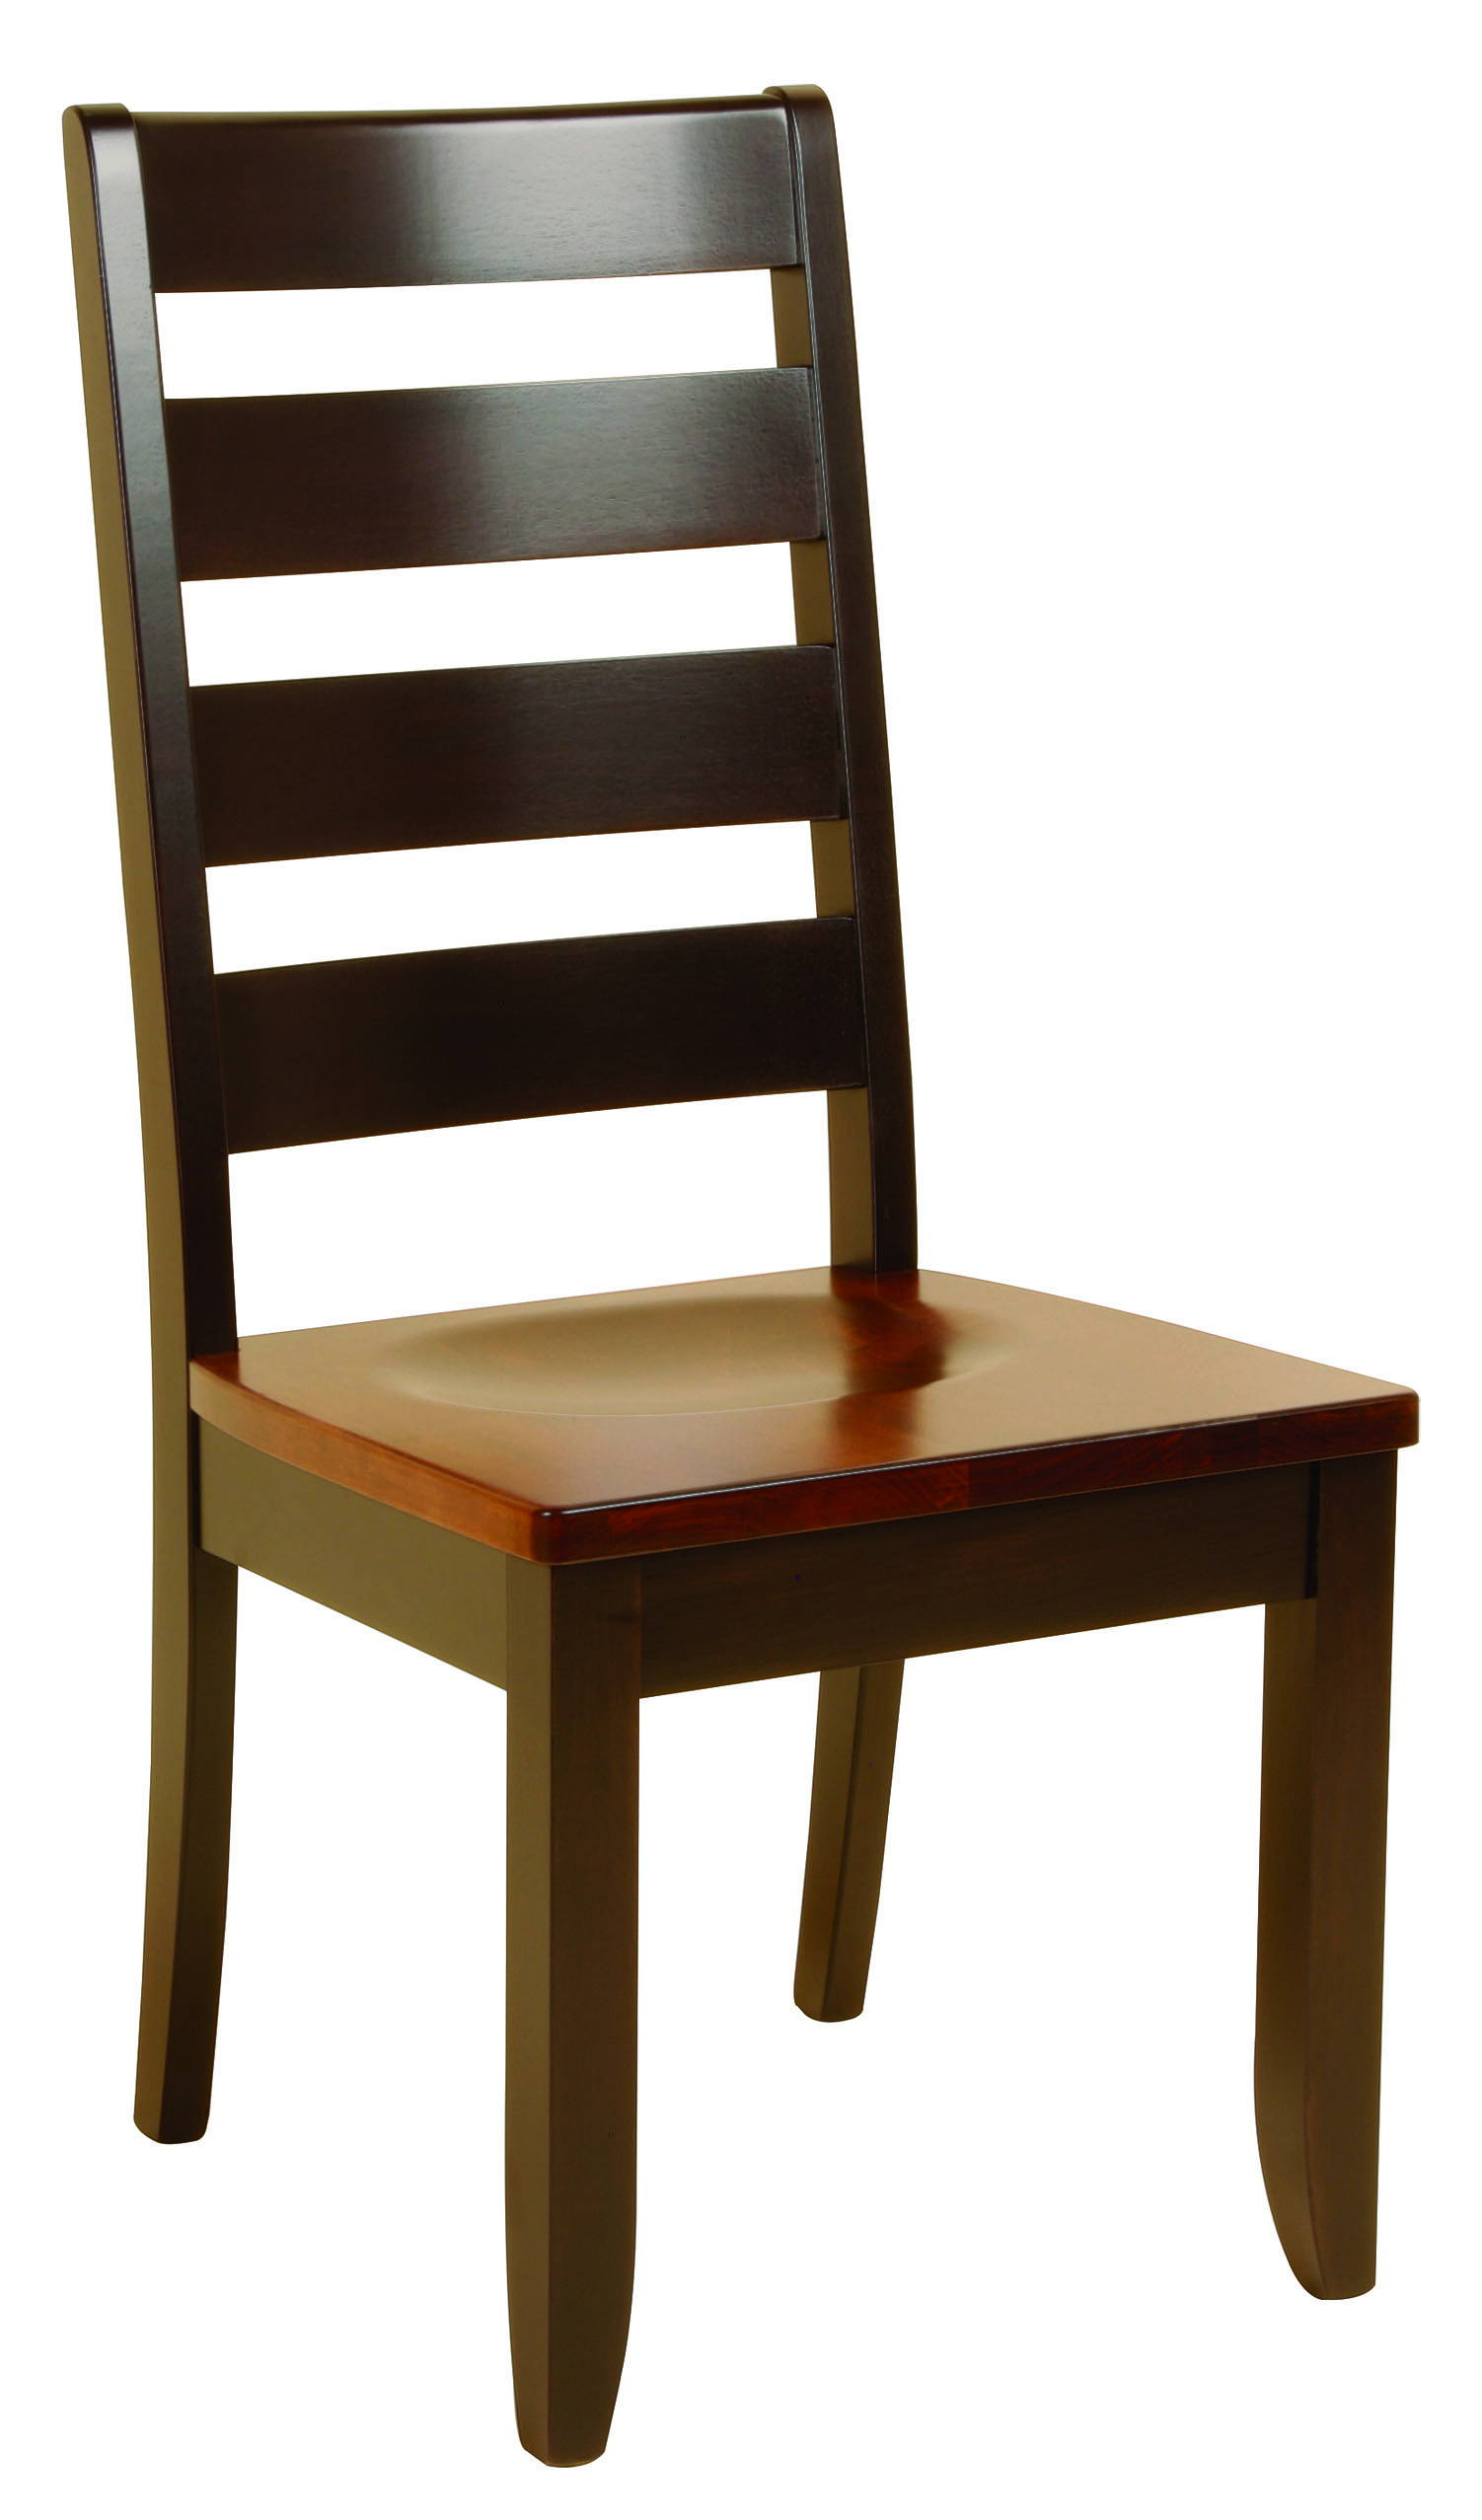 Dutch Ladder Solid Wood, Handcrafted Kitchen Chair or DIning Chair from Harvest Home Interiors Amish Furniture